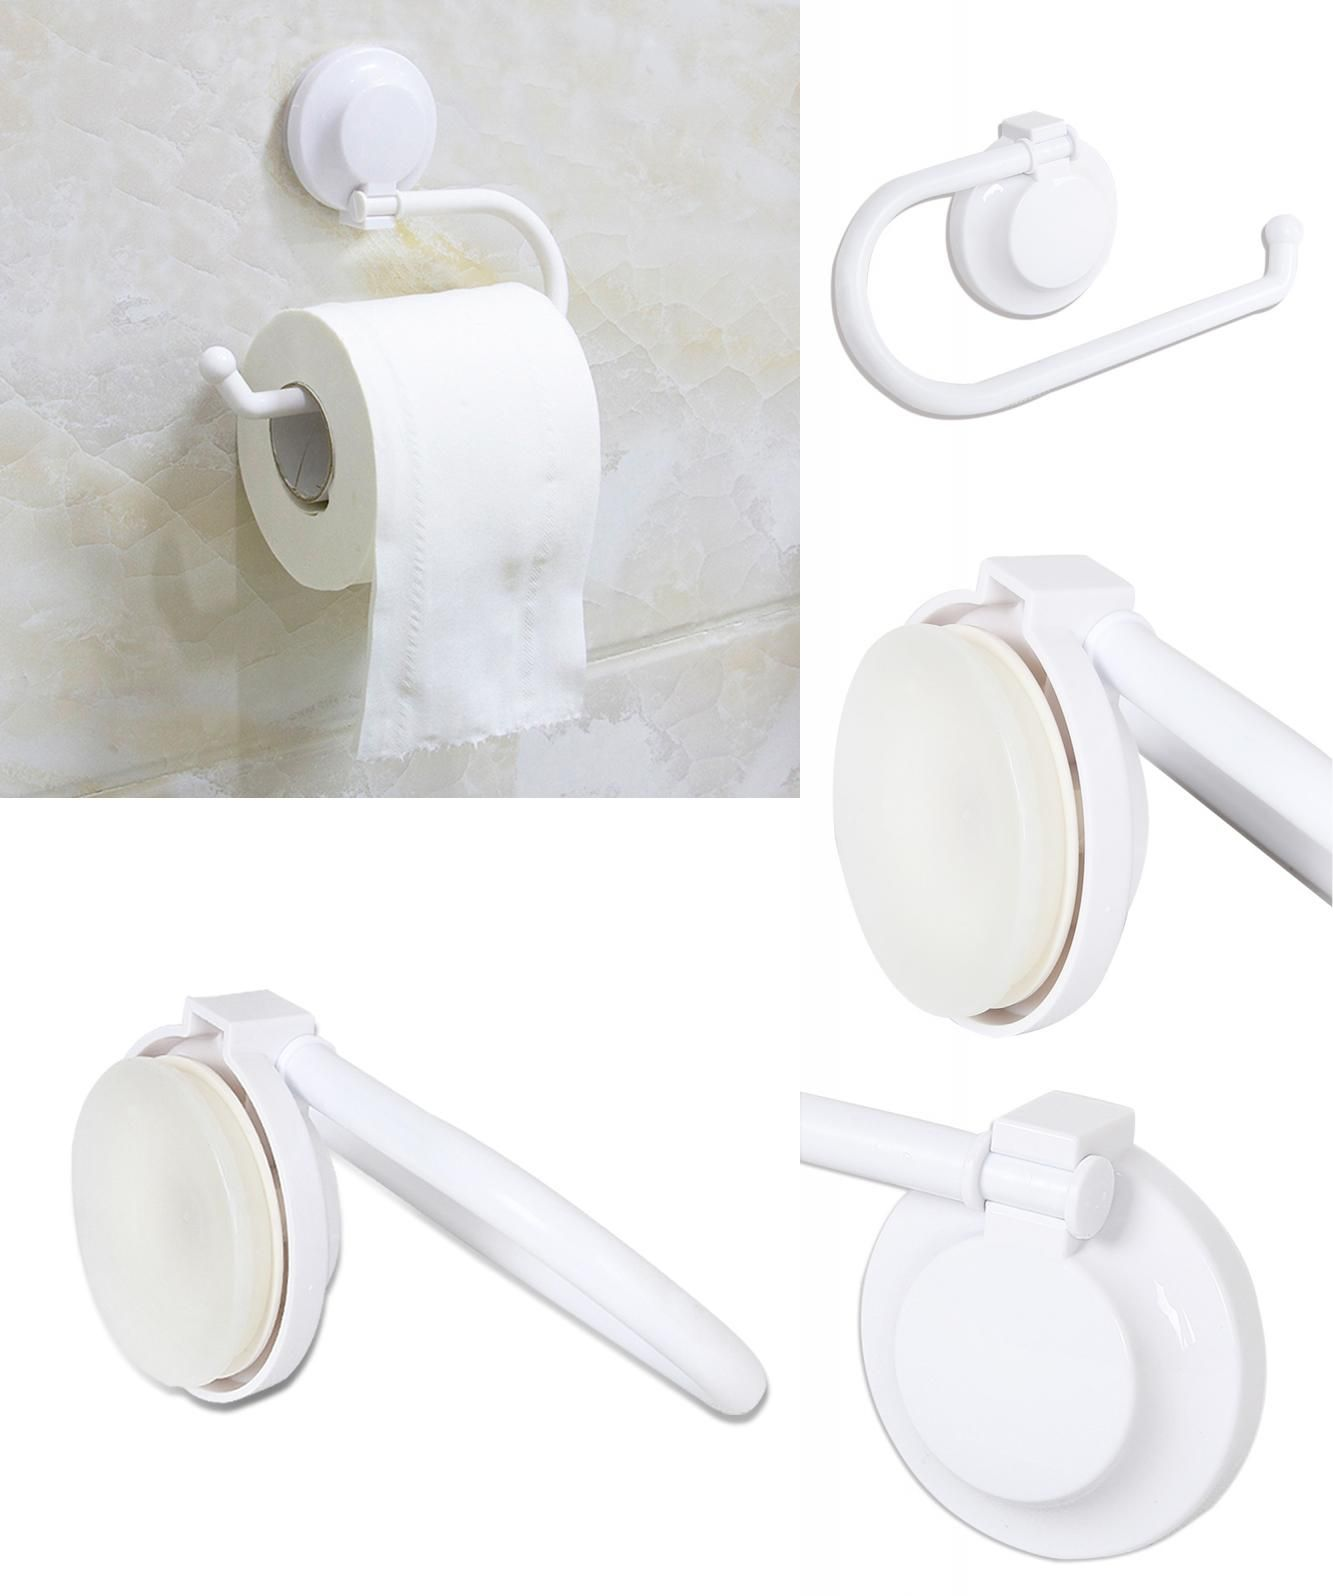 Visit to Buy] Plastic Suction up Paper Towel Holder for Kitchen ...